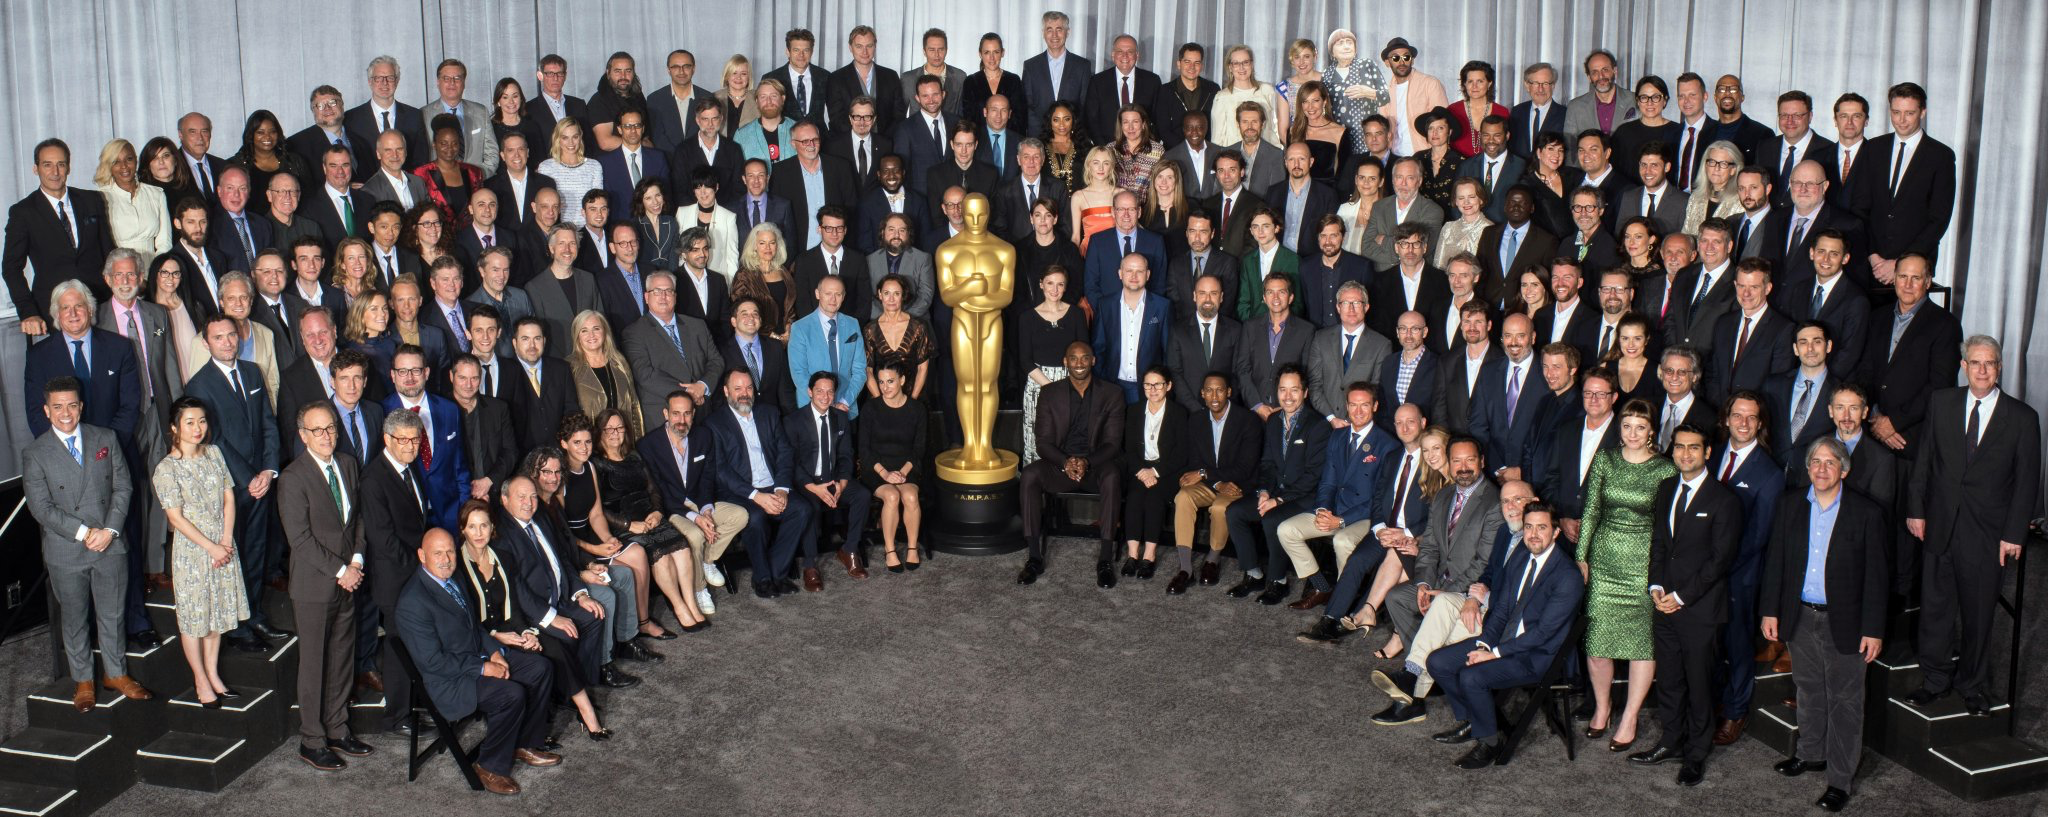 1b7f3dcbc Kobe Bryant got the All-Star treatment at the Oscars lunch on Monday —  getting the prime front row seat for the official group photo … despite the  fact he ...